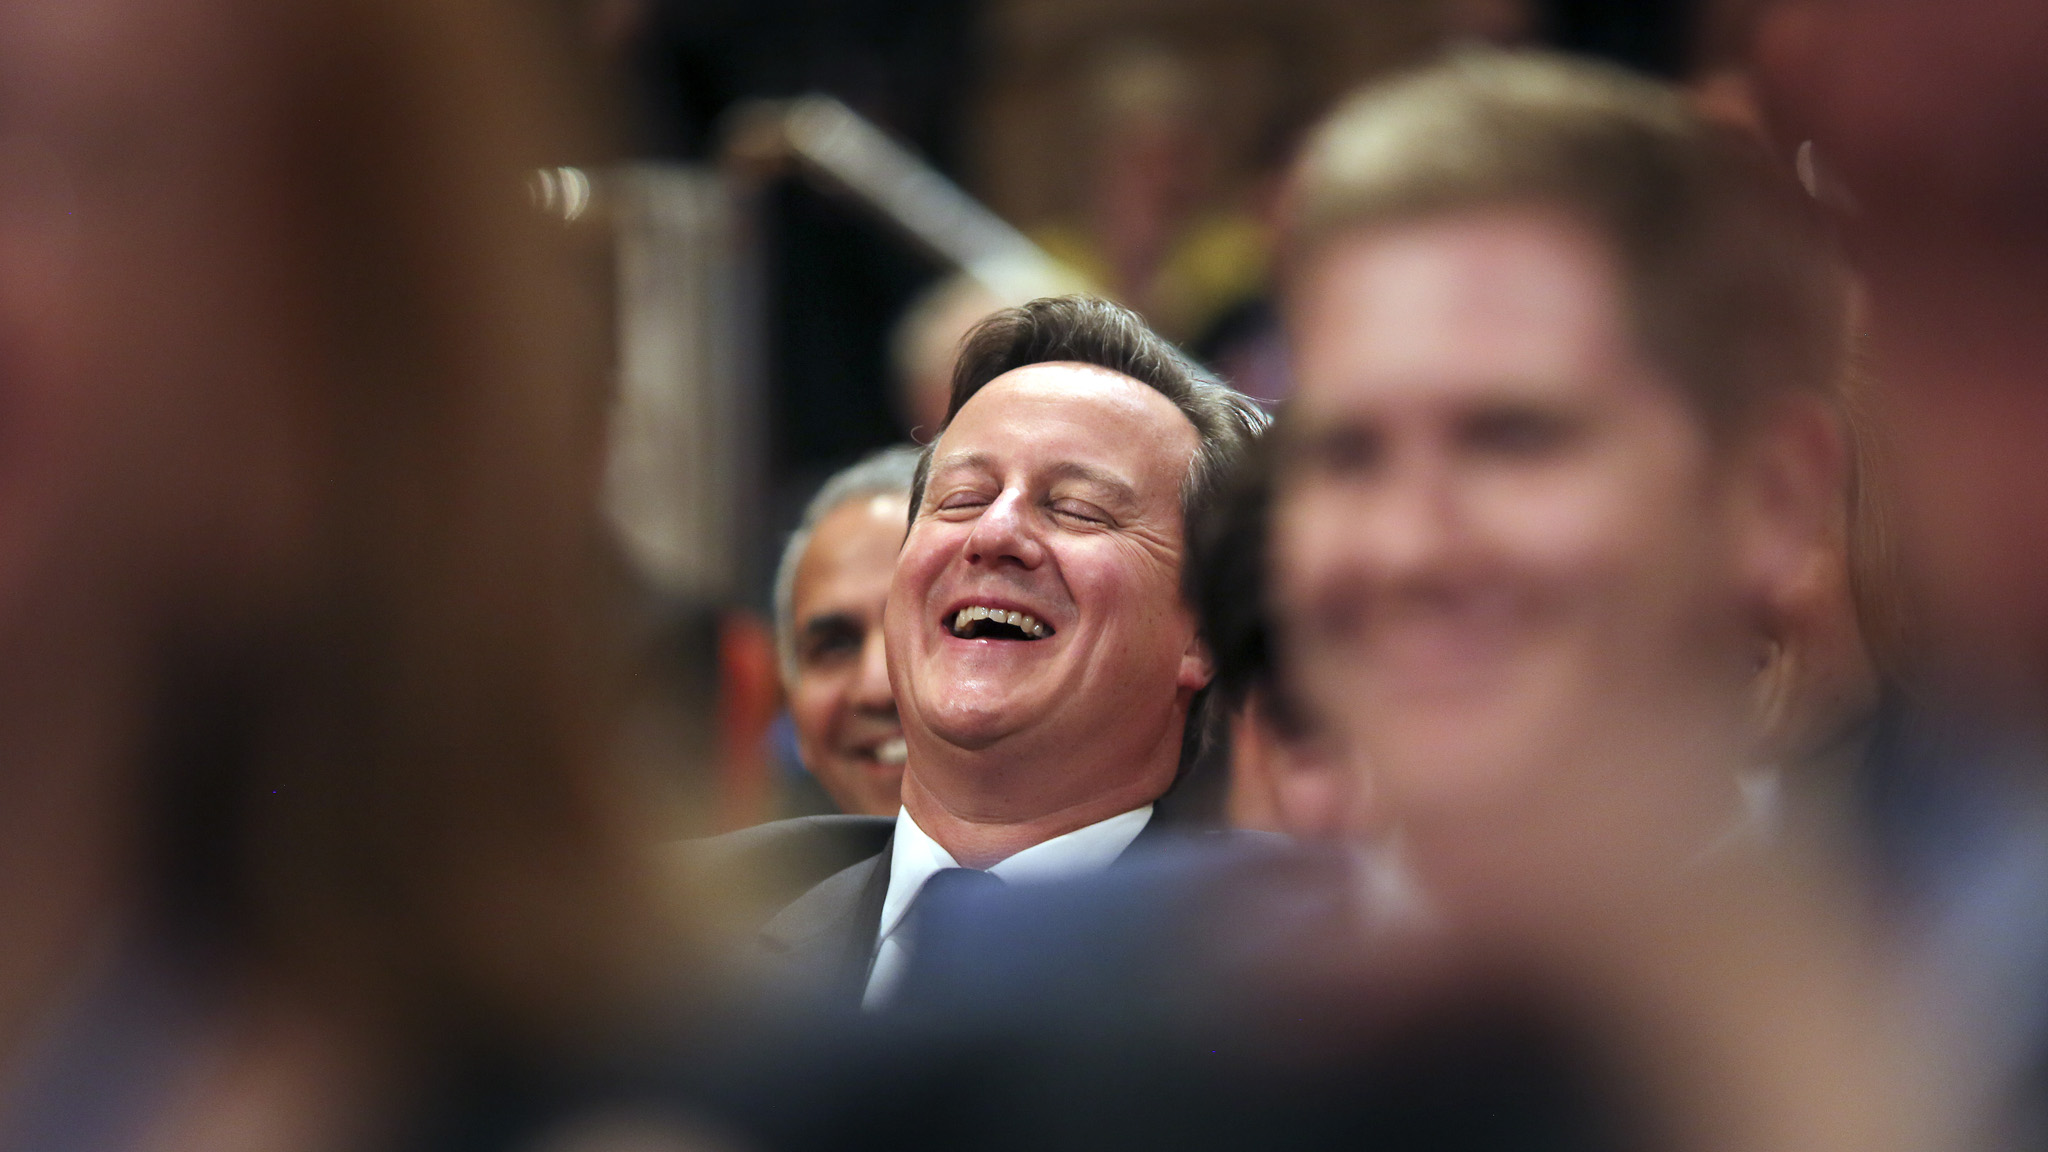 Prime Minster, David Cameron, laughs as Boris Johnson, London Mayor, delives his speech at the Conservative party conference in Birmingham this afternoon.